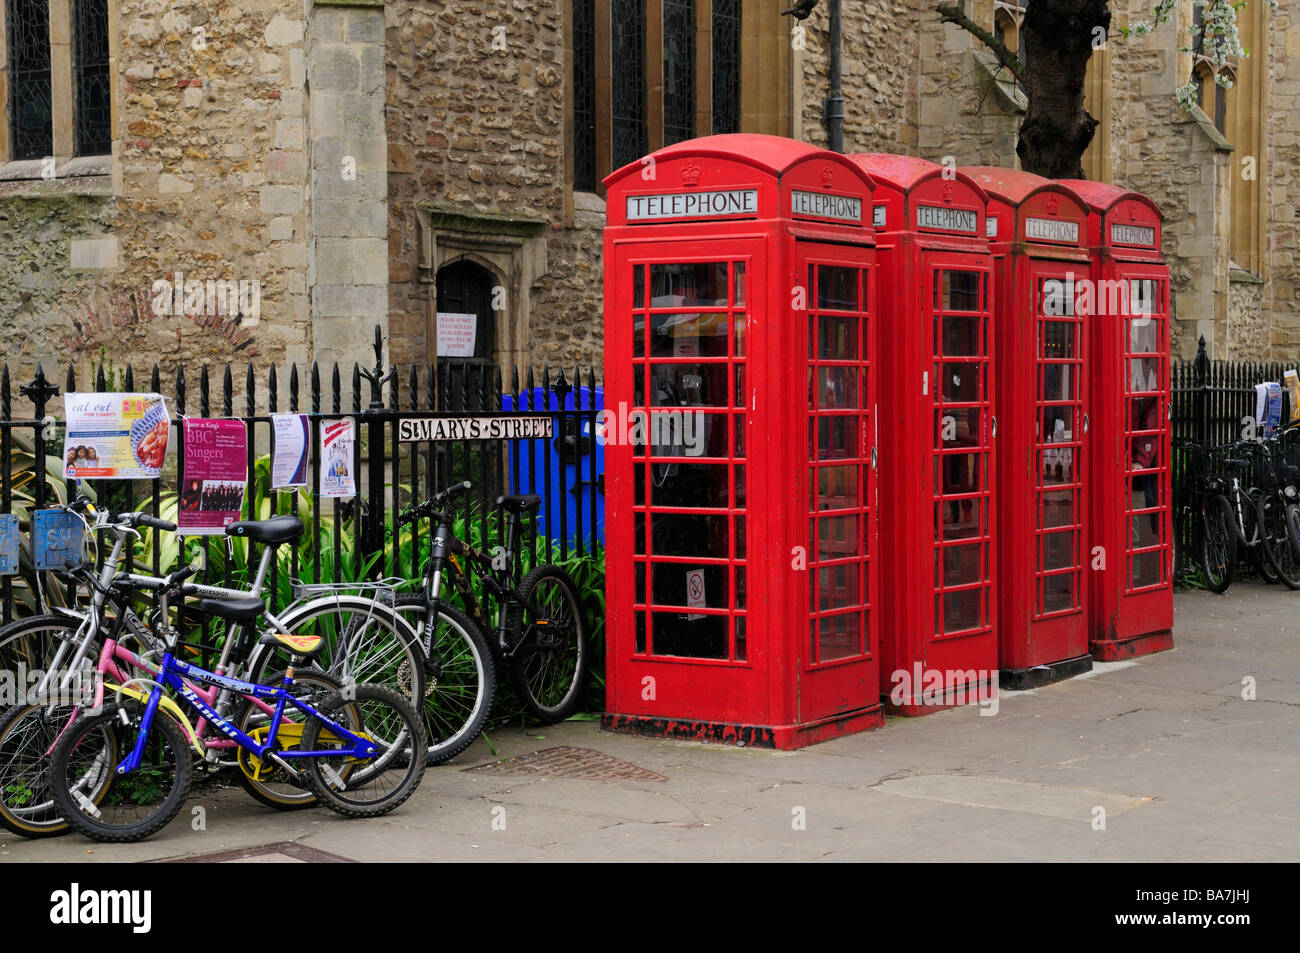 Group of four telephone boxes and bicycles outside Great St Marys Church, Cambridge England Uk - Stock Image